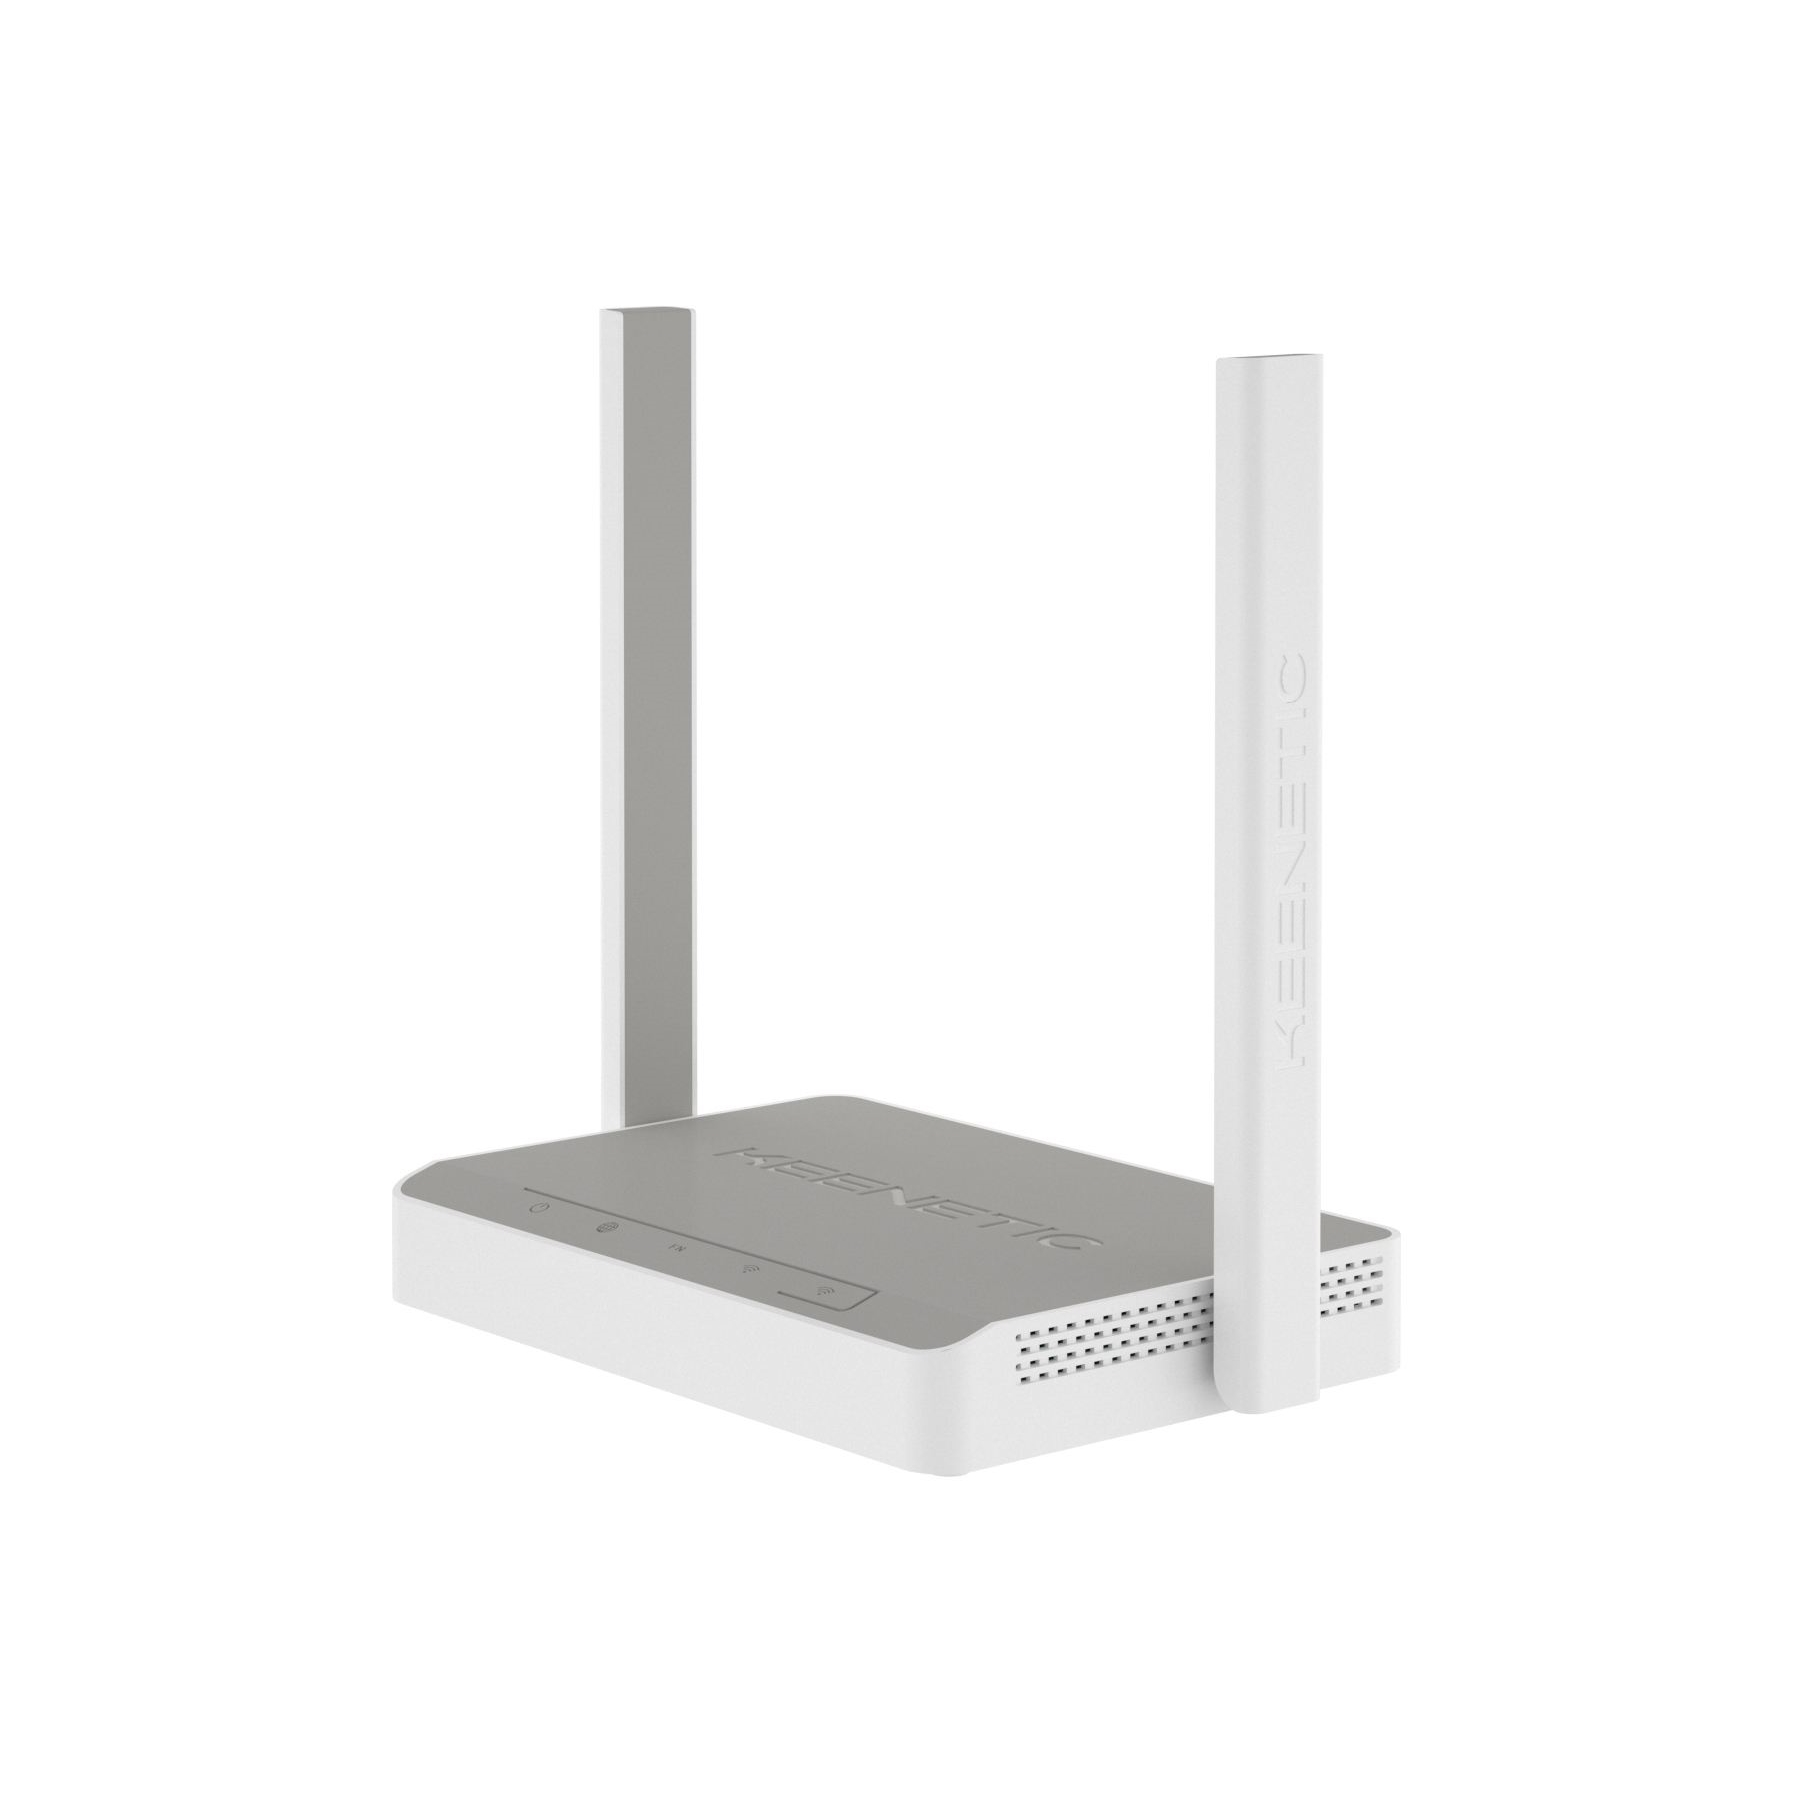 KEENETIC Lite KN-1310-01TR 300mbps N300 2.4GHZ Mesafe Genişletici EV Ofis Tipi Access Point 4G LTE Router 2x 5dbi sabit